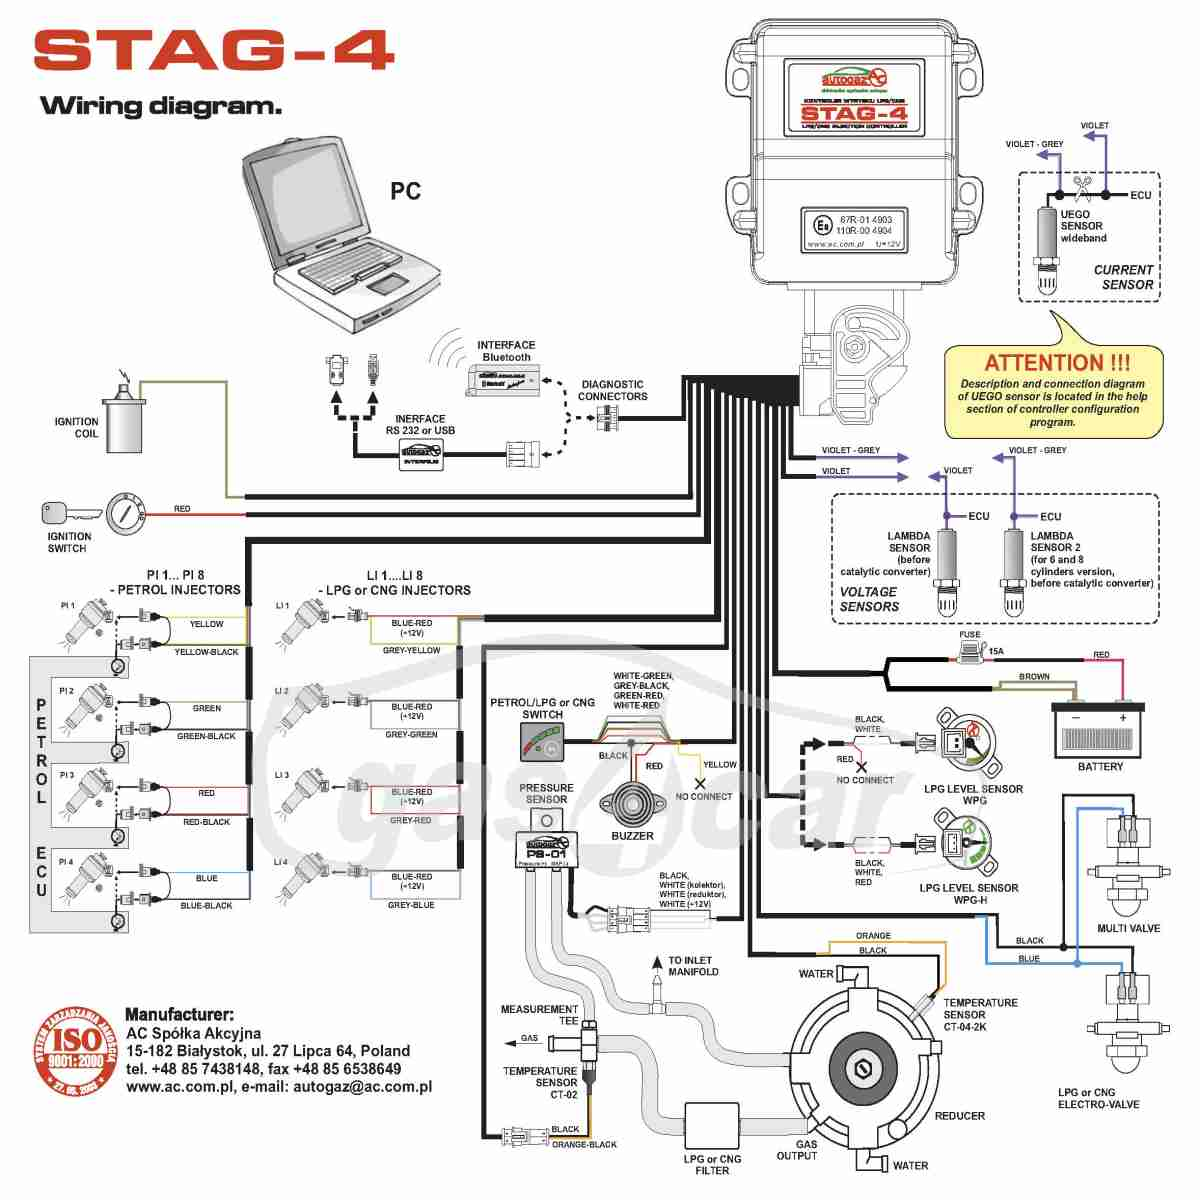 stag4wires ac stag 4 & 300 sequential injection change over switch button lpg changeover switch wiring diagram at readyjetset.co